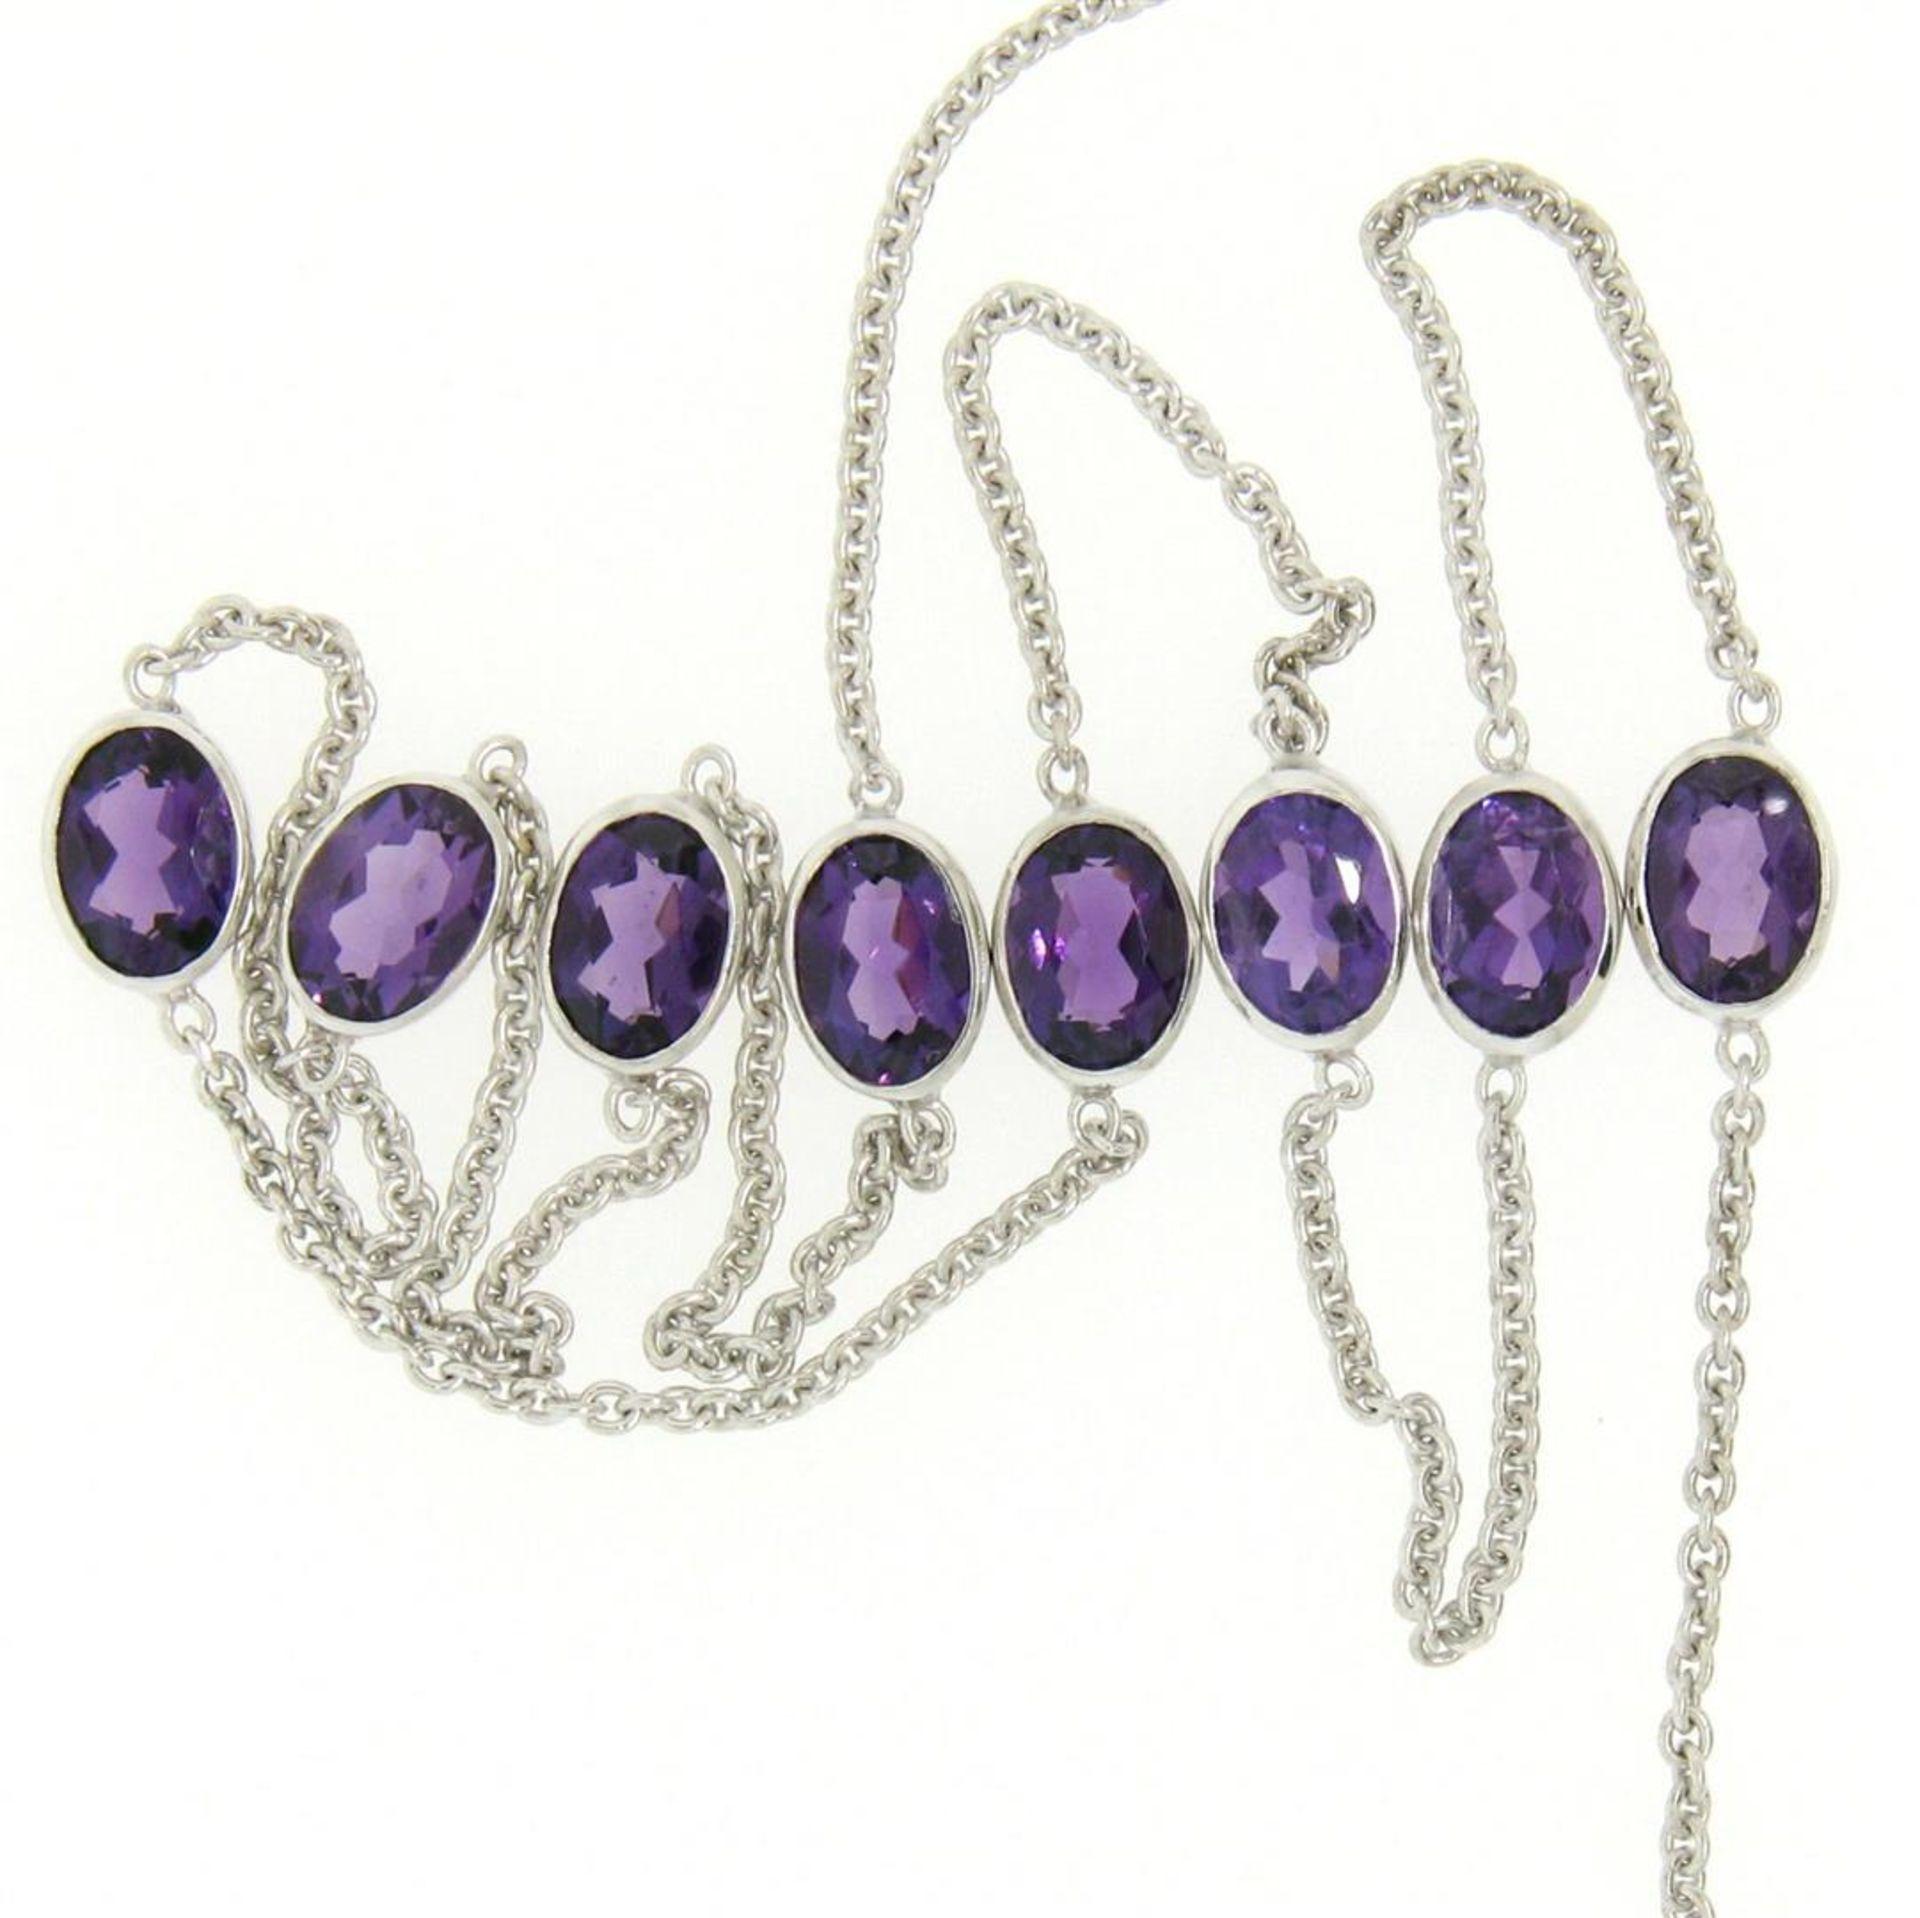 """14k White Gold 8 ctw 8 Station Amethyst by the Yard 20"""" Cable Link Chain Necklac - Image 4 of 7"""